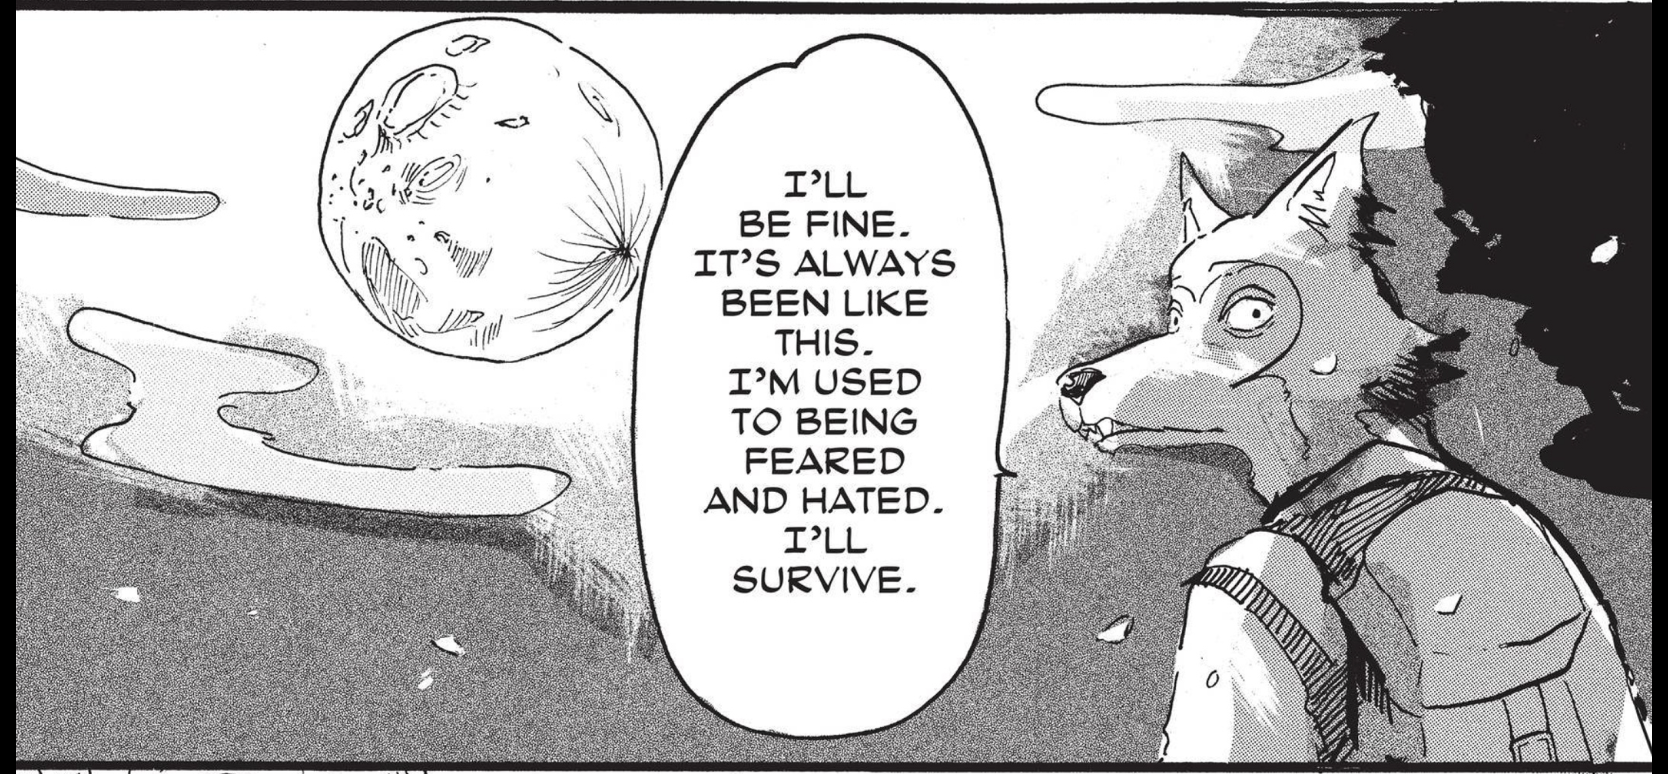 Manga art: an anthropomorphic wolf wearing a backpack walks under a full moon, speaking to someone off-panel. He says 'I'll be fine. It's always been like this. I'm used to being feared and hated. I'll survive.'